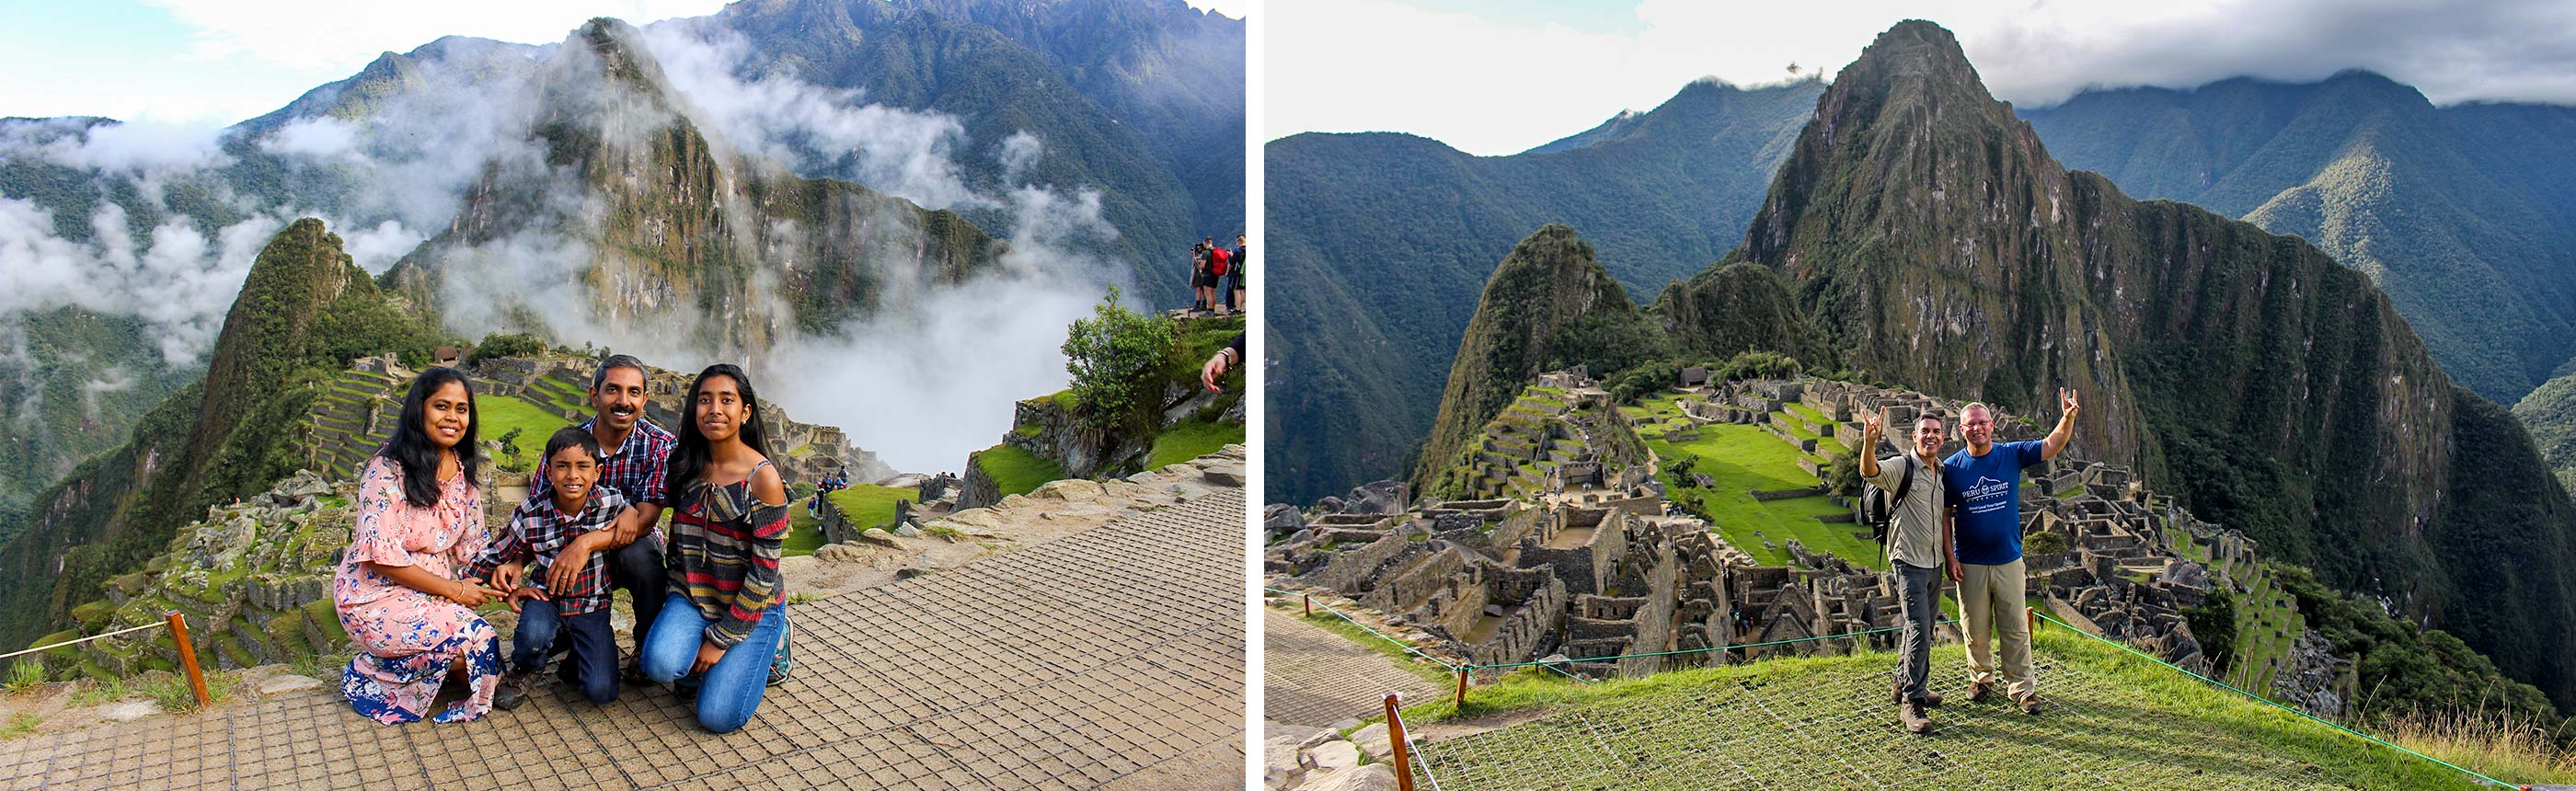 Sacred Valley with Machu Picchu 2D/1N